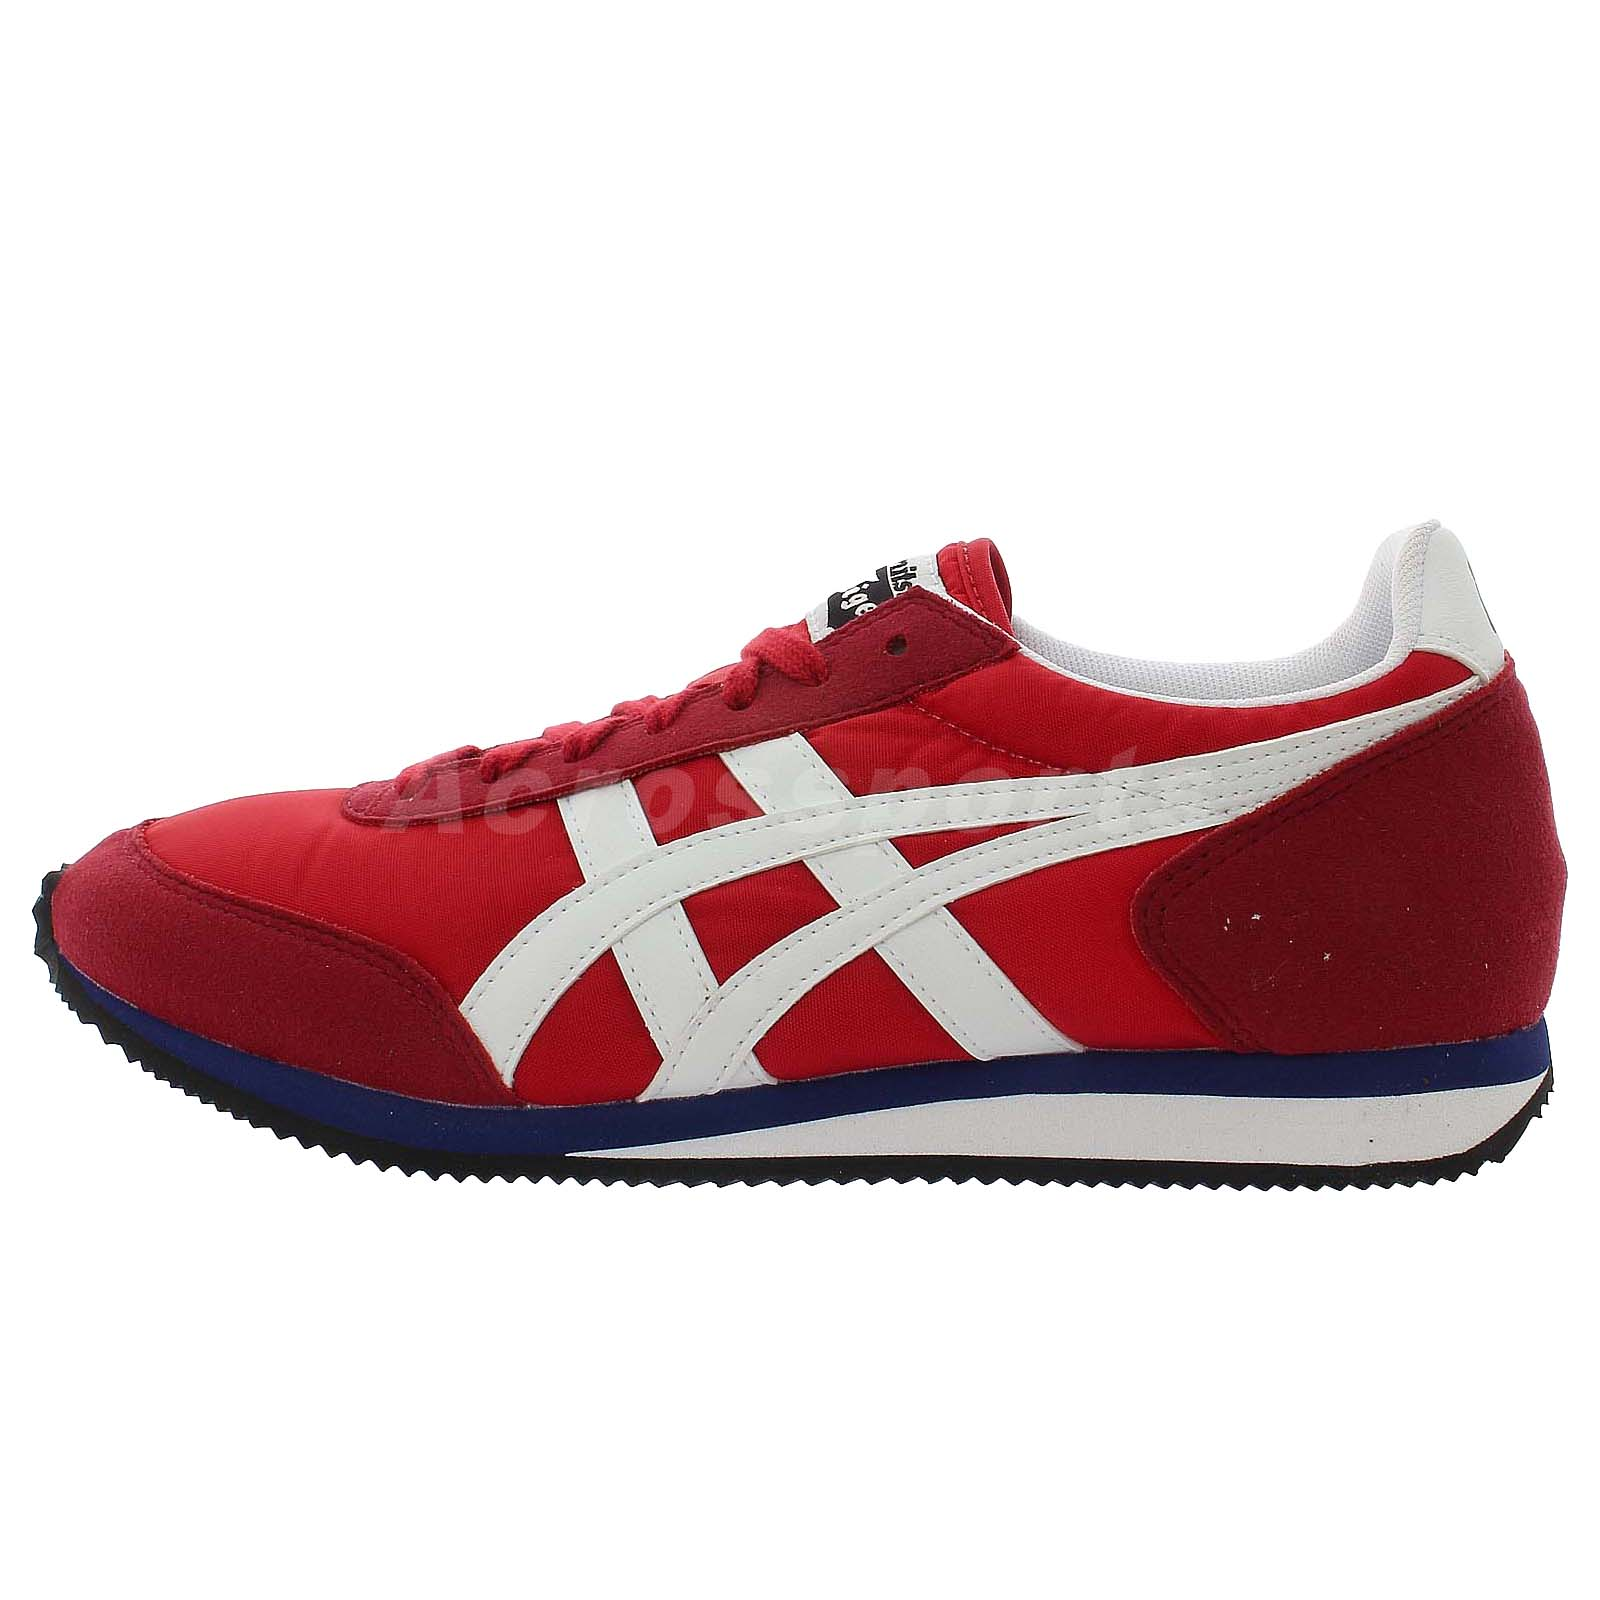 old school shoes asics retro sneakers. Black Bedroom Furniture Sets. Home Design Ideas